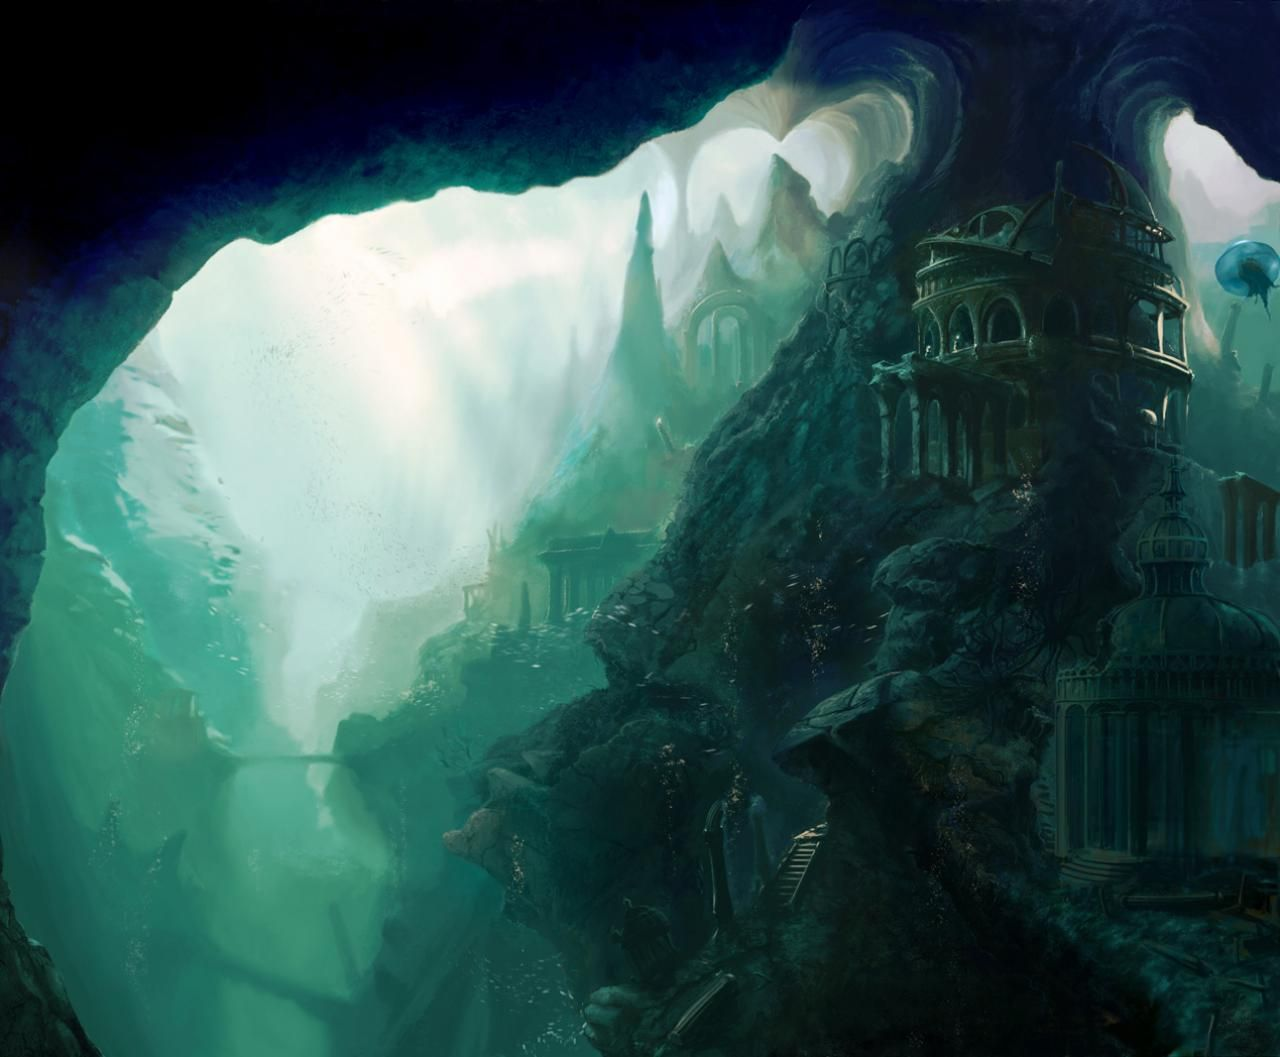 17 Best images about  Atlantis  on Pinterest   Underwater city  Nassau and  Qiandao lake. 17 Best images about  Atlantis  on Pinterest   Underwater city